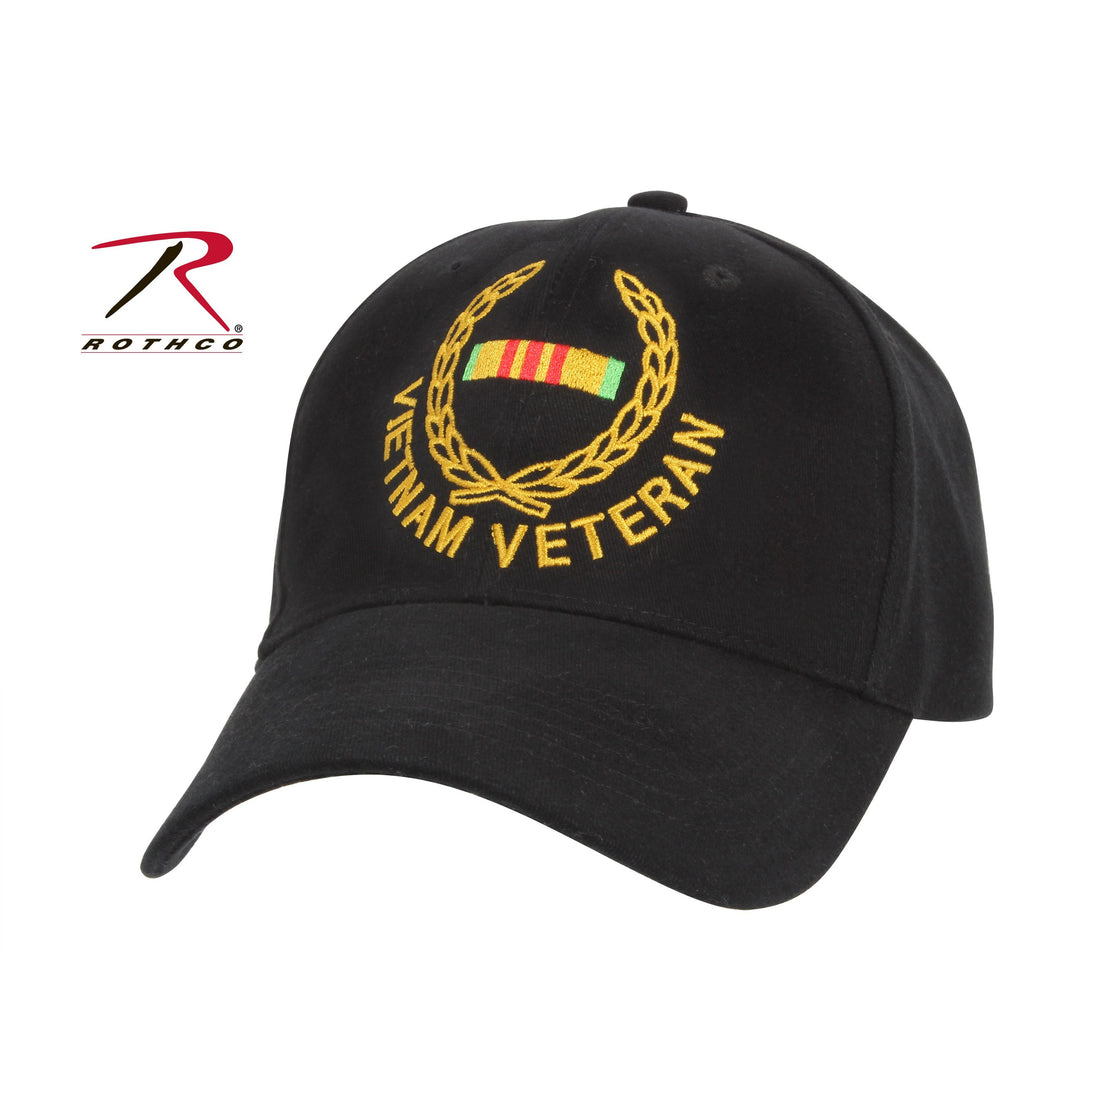 USMC hat by Marine Corps Direct called Vietnam Veteran Supreme Low Profile Insignia Cap